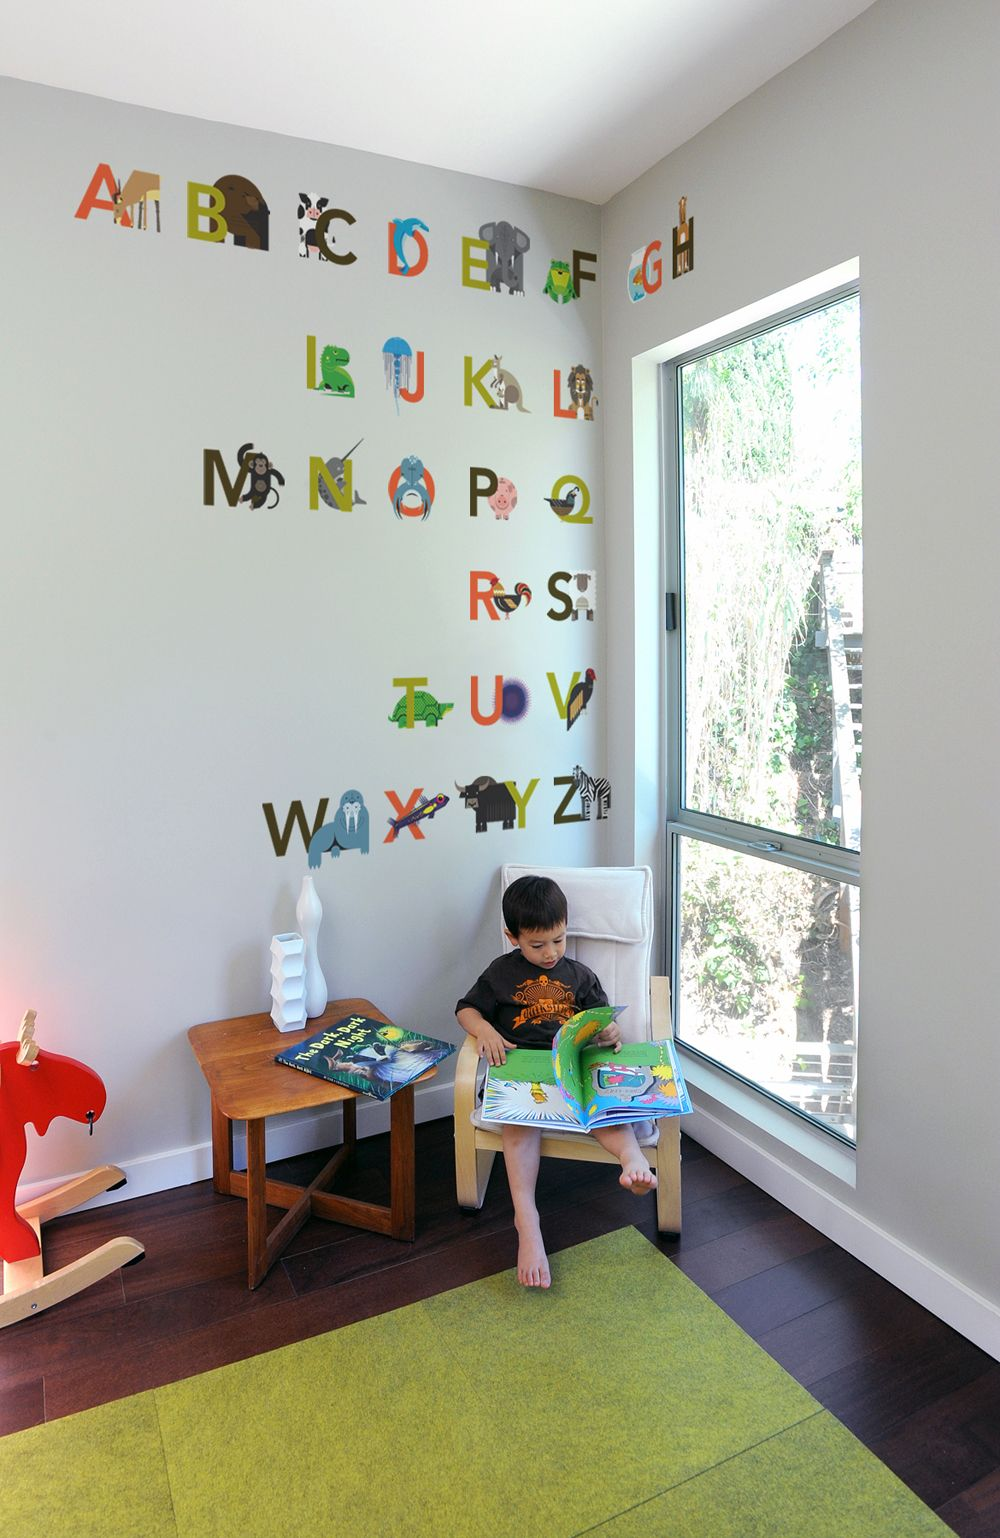 Vinyl Wall Abc Stickers By Supernice Need Activities Recipes